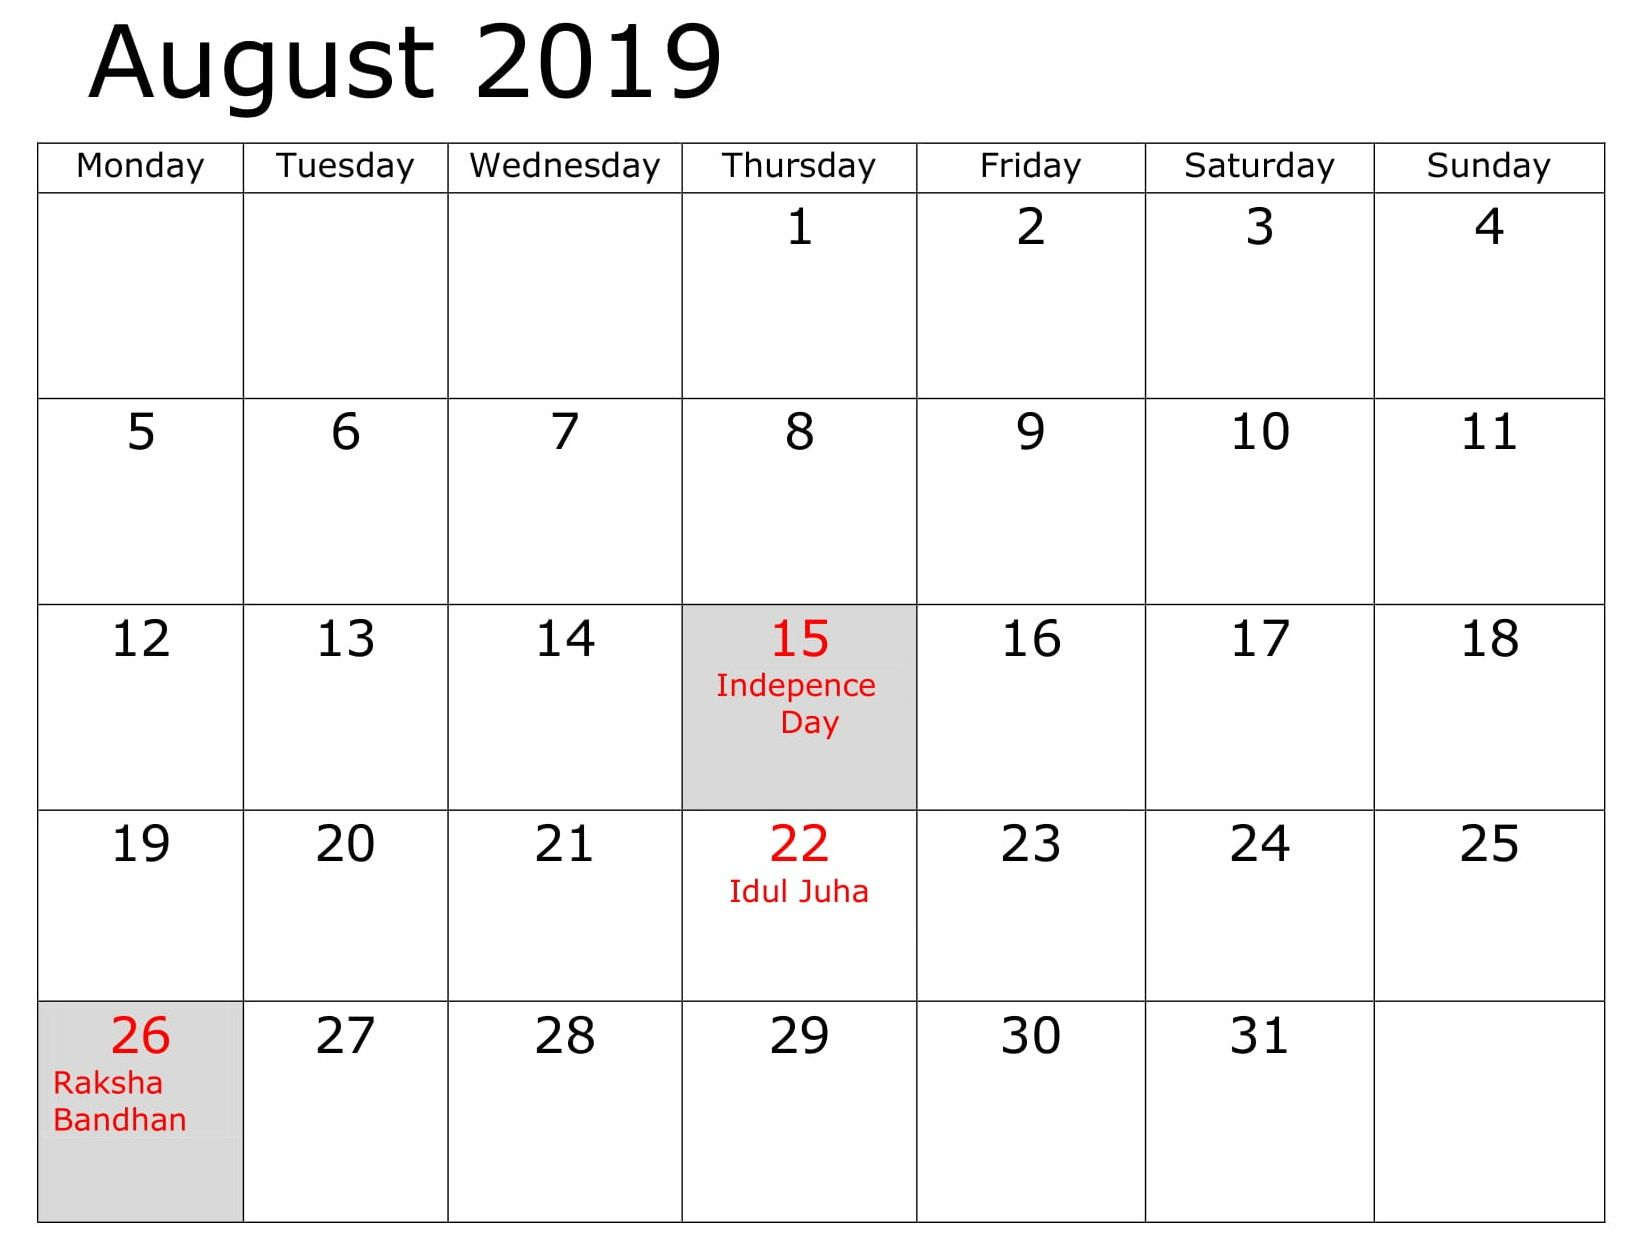 August 2019 Calendar With Holidays.August Business 2019 Calendar With Holidays Calendar August 2019